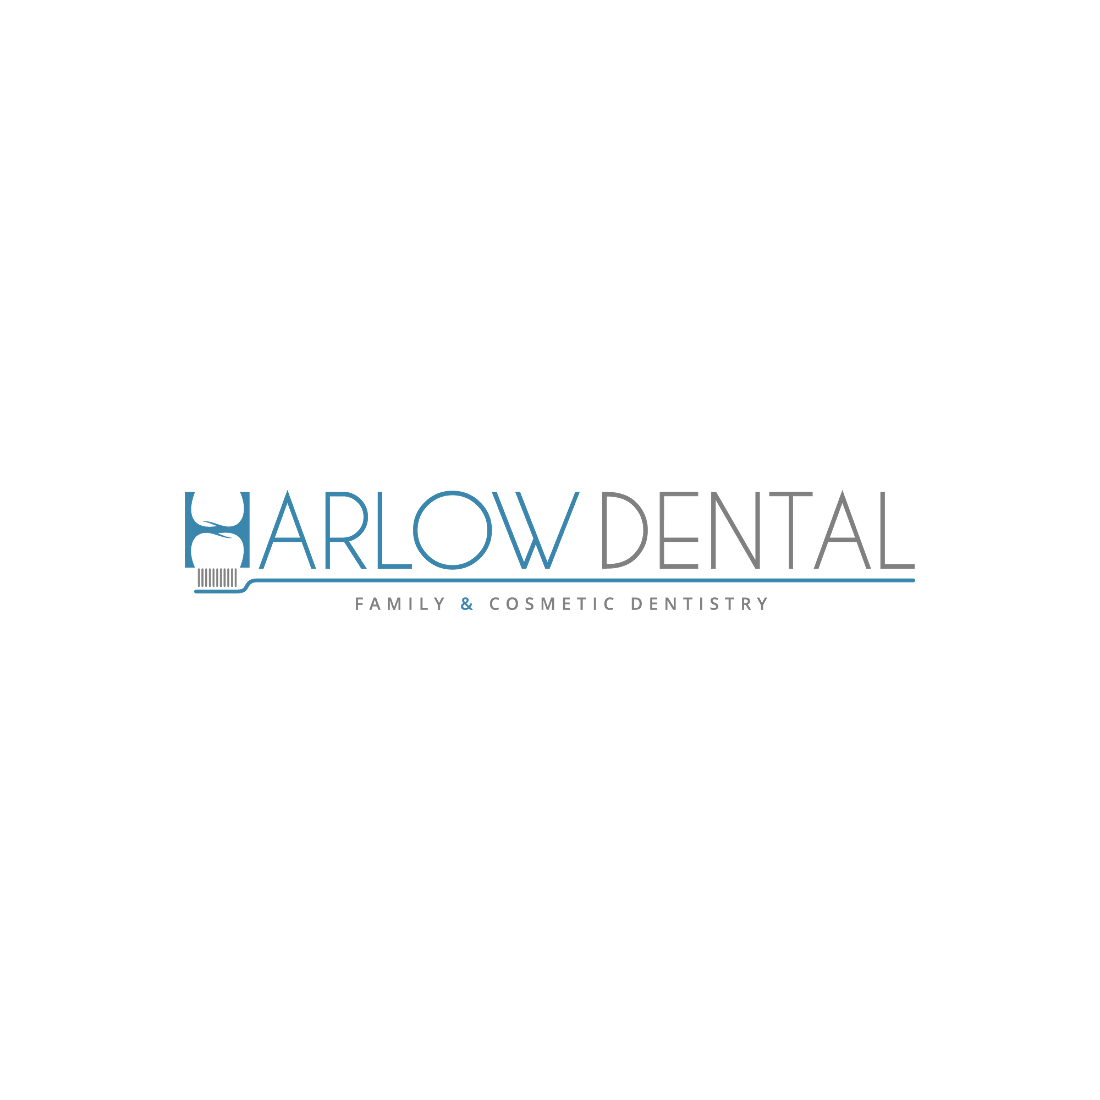 Harlow Dental at Steele Creek